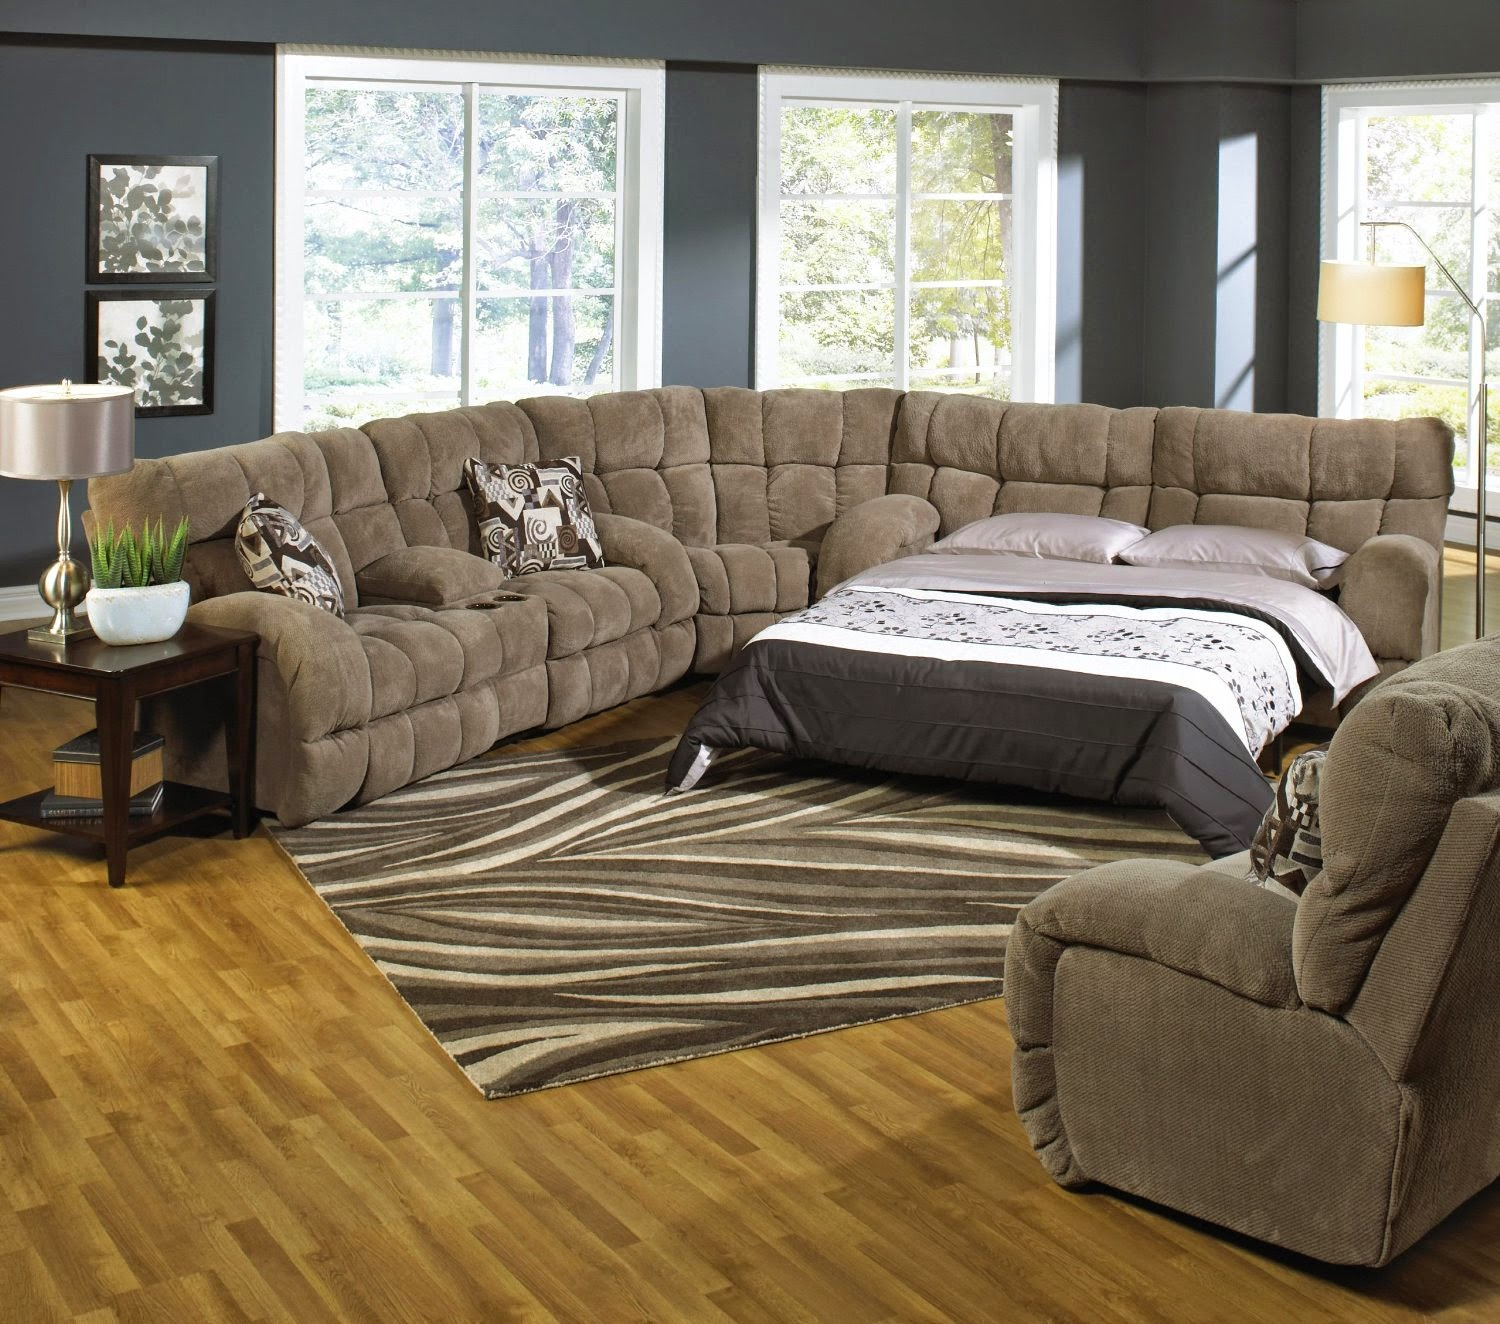 reclining-sleeper-sofa-set